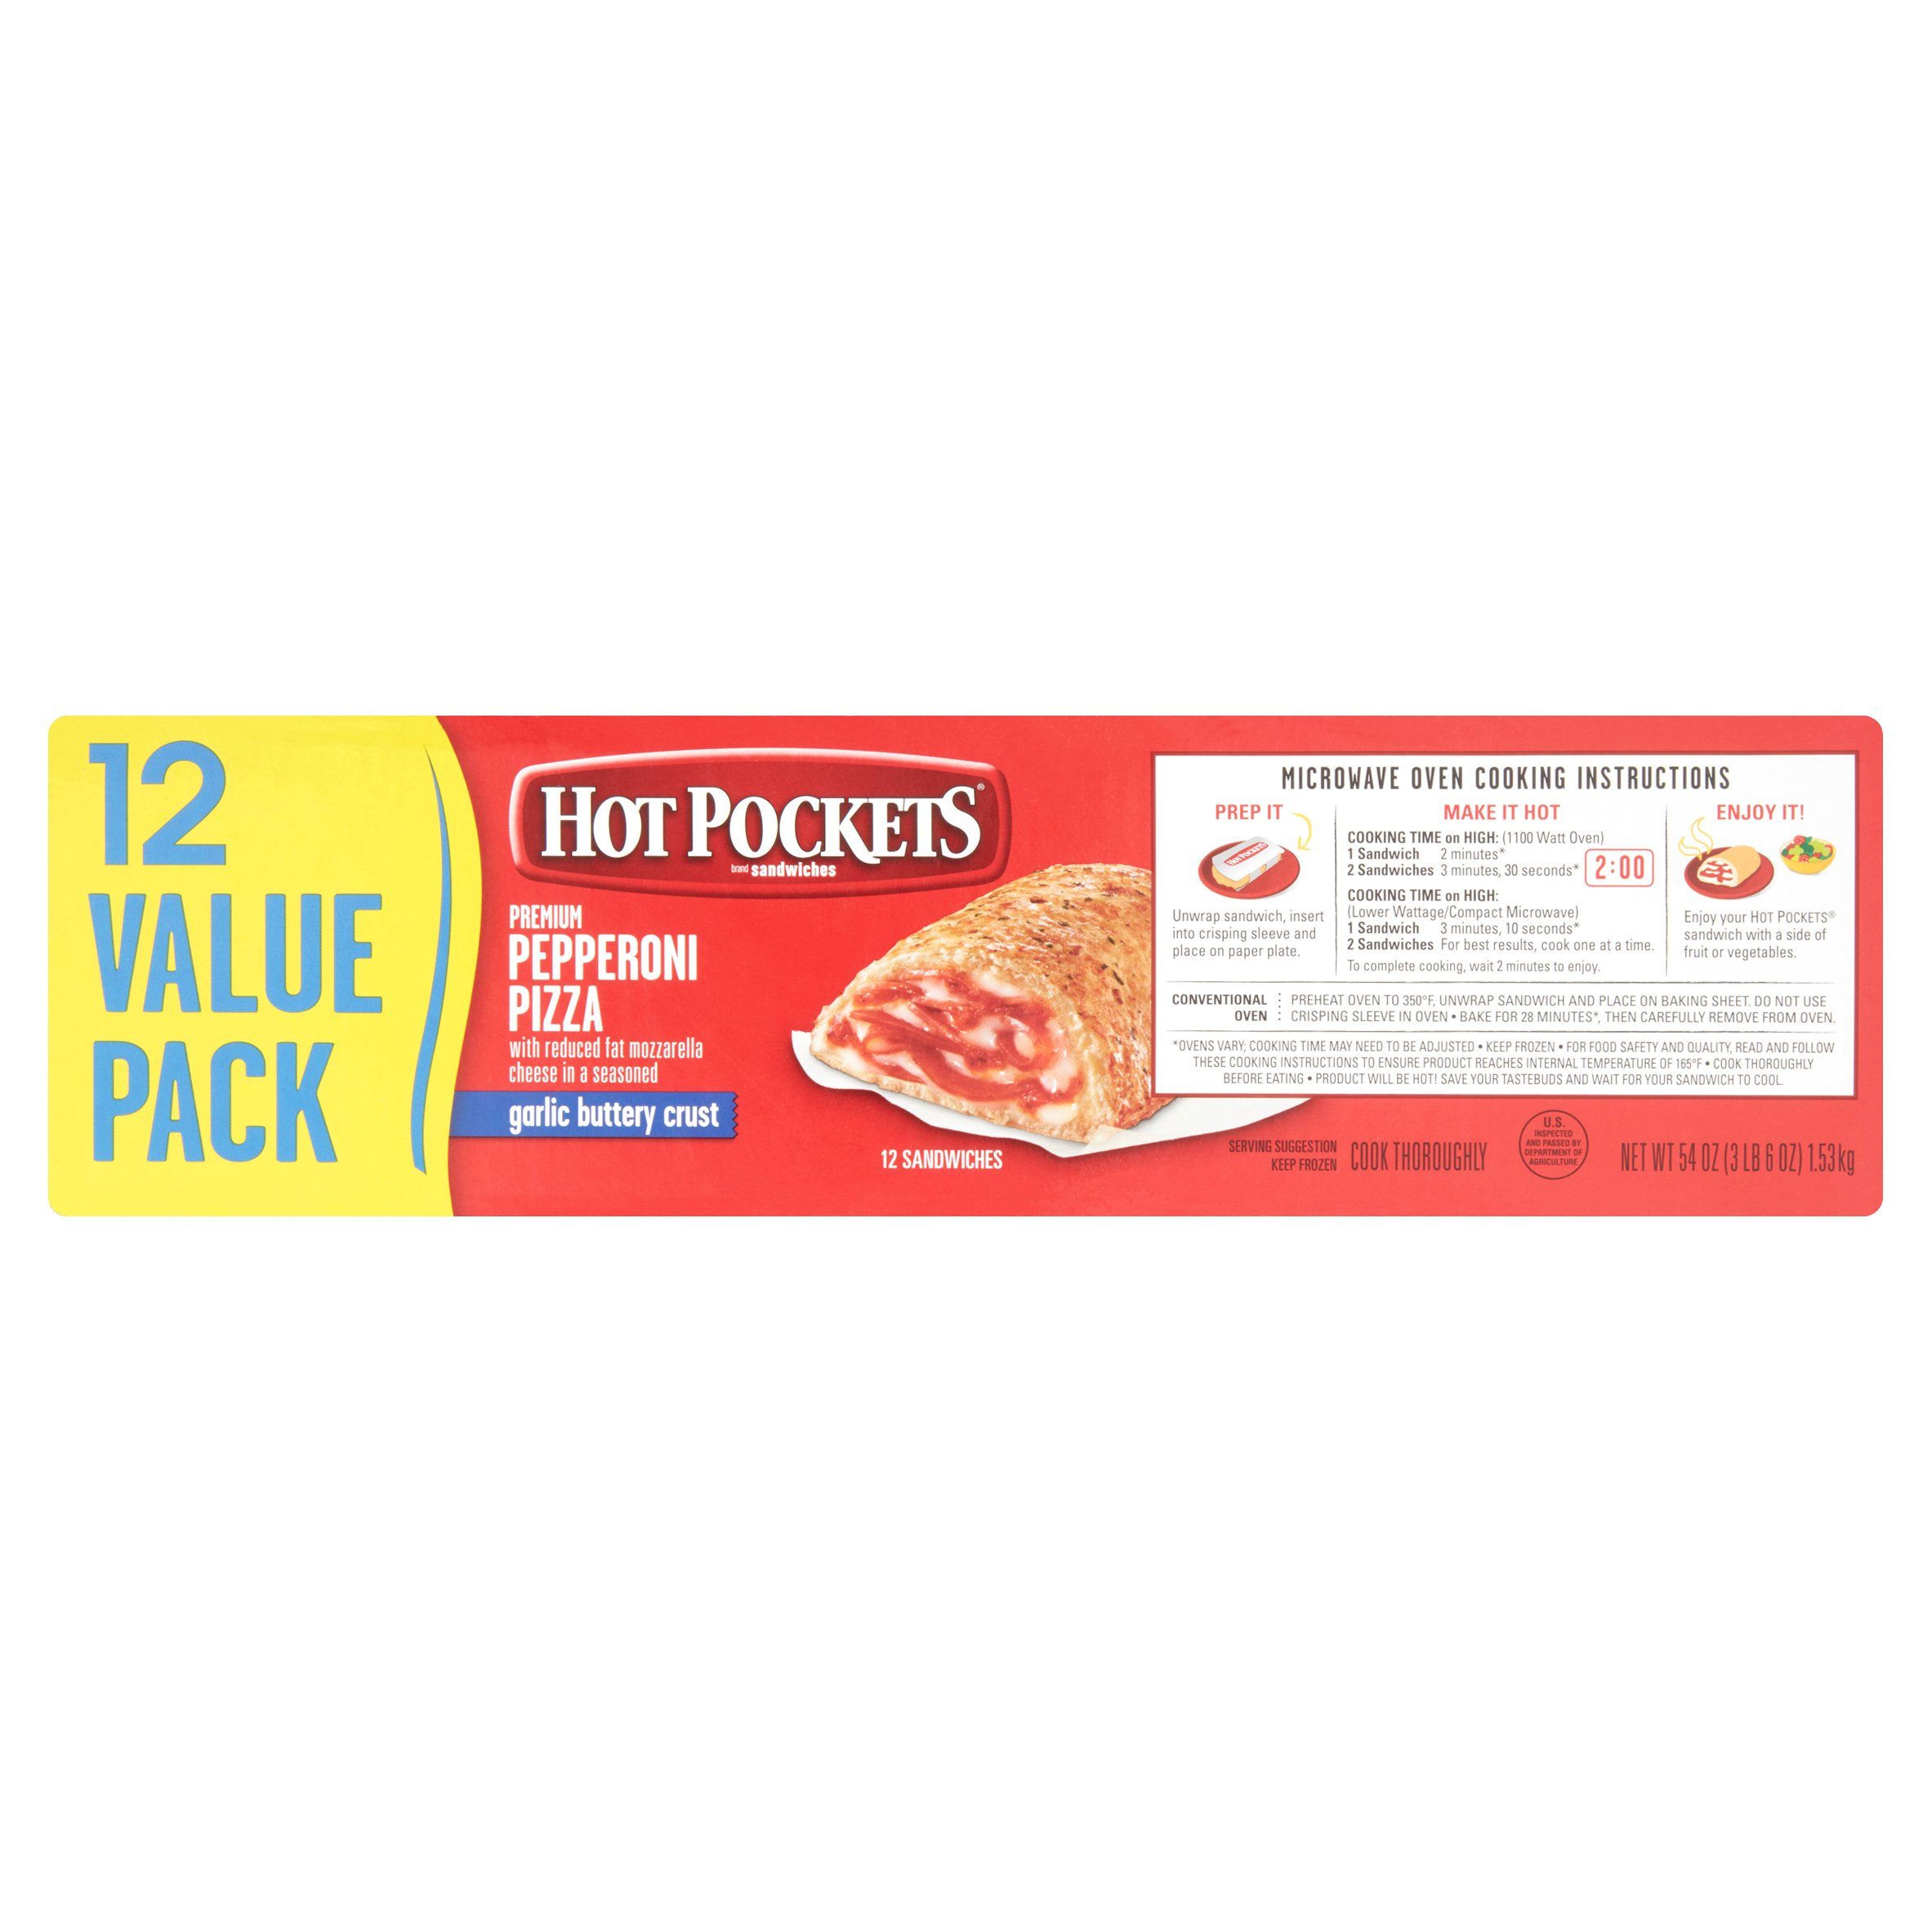 Nestlé Hot Pockets Sandwiches Premium Pepperoni Pizza Value Pack 12 Count 54 Oz